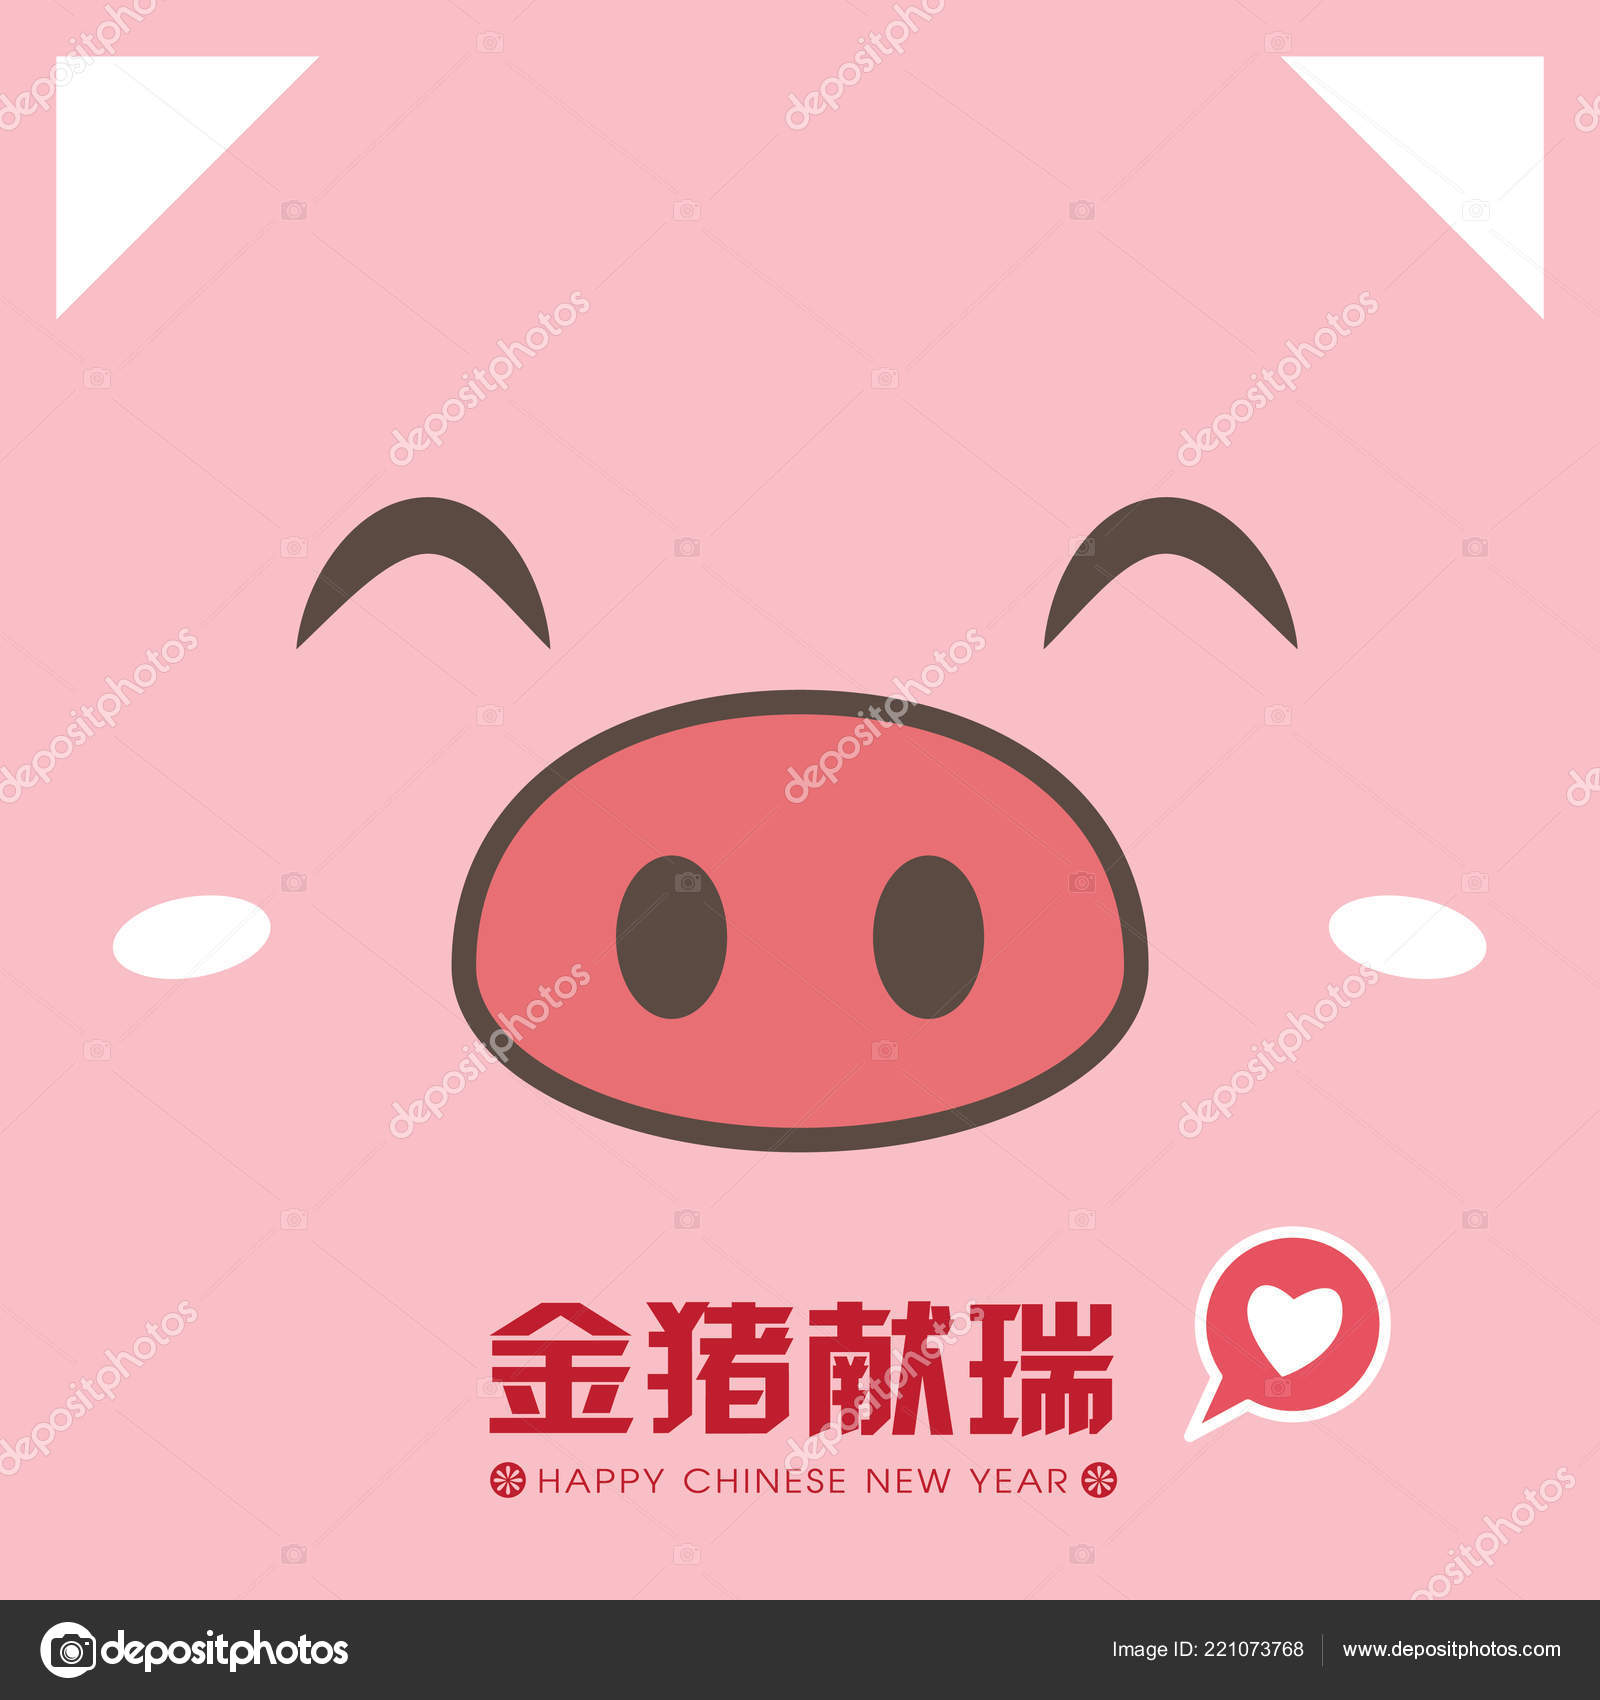 2019 chinese new year template greeting card cute piggy face stock vector